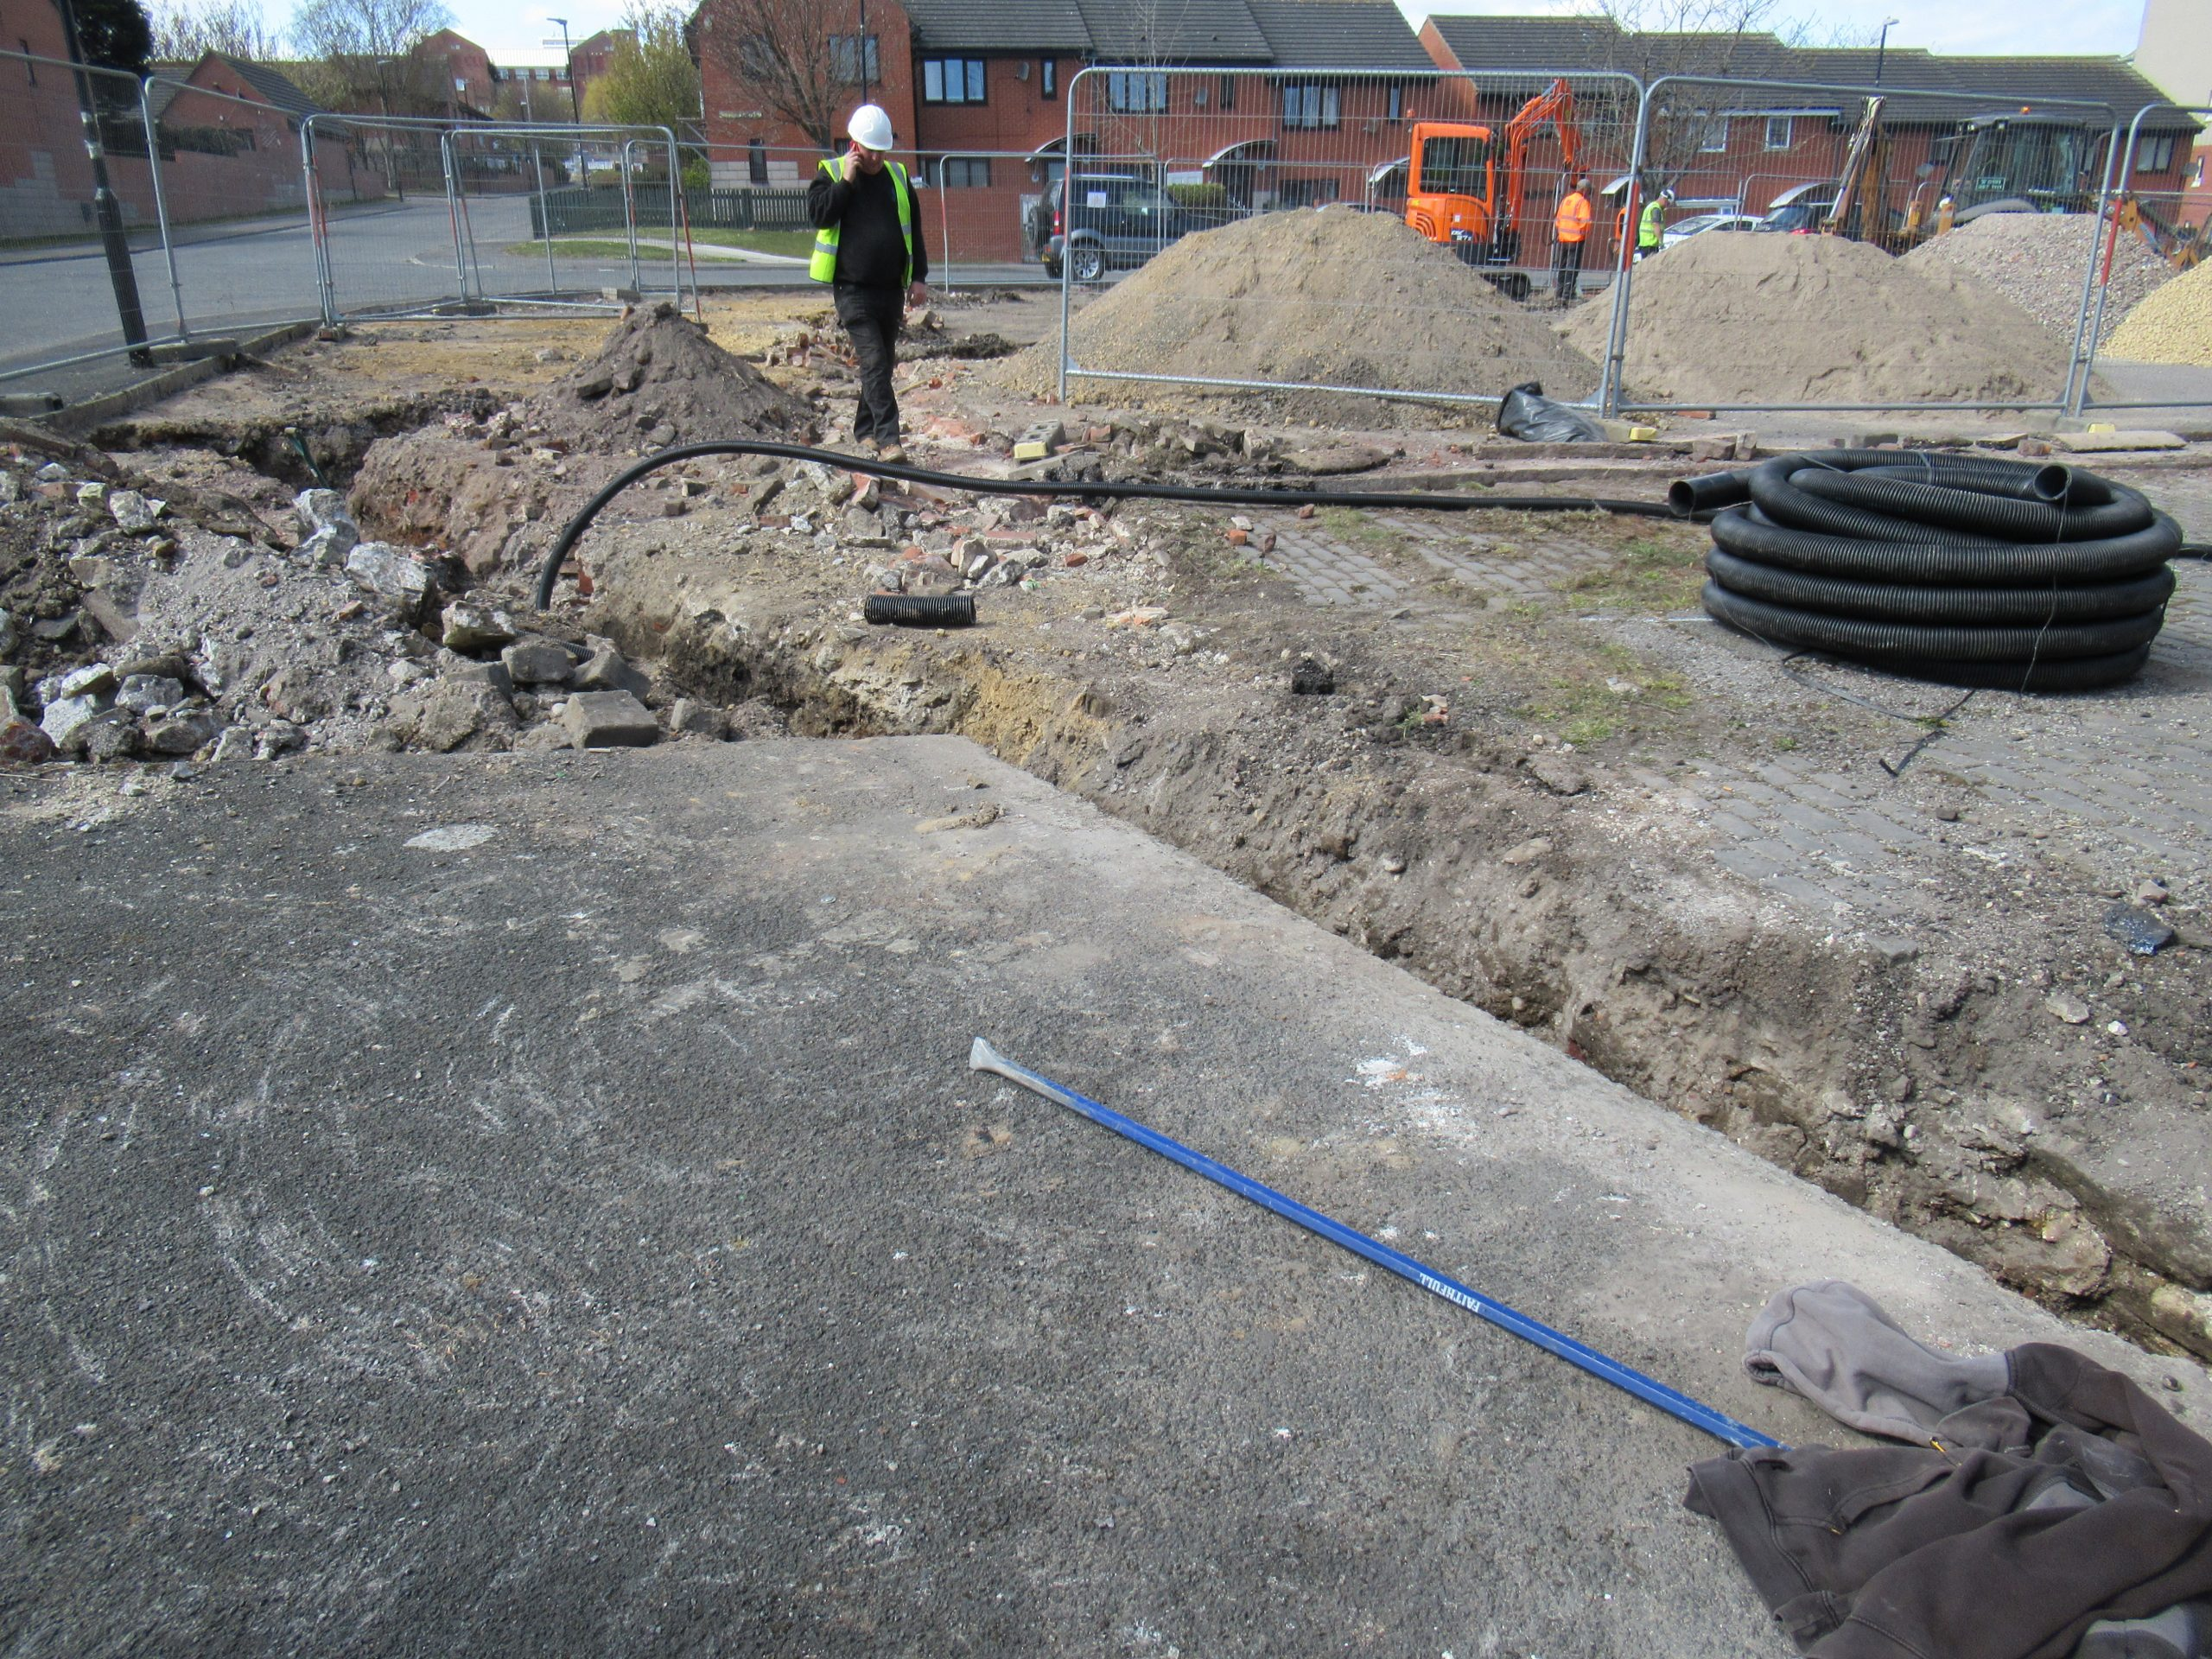 21st April 2021 digging trenches for cables, lamp posts and cctv